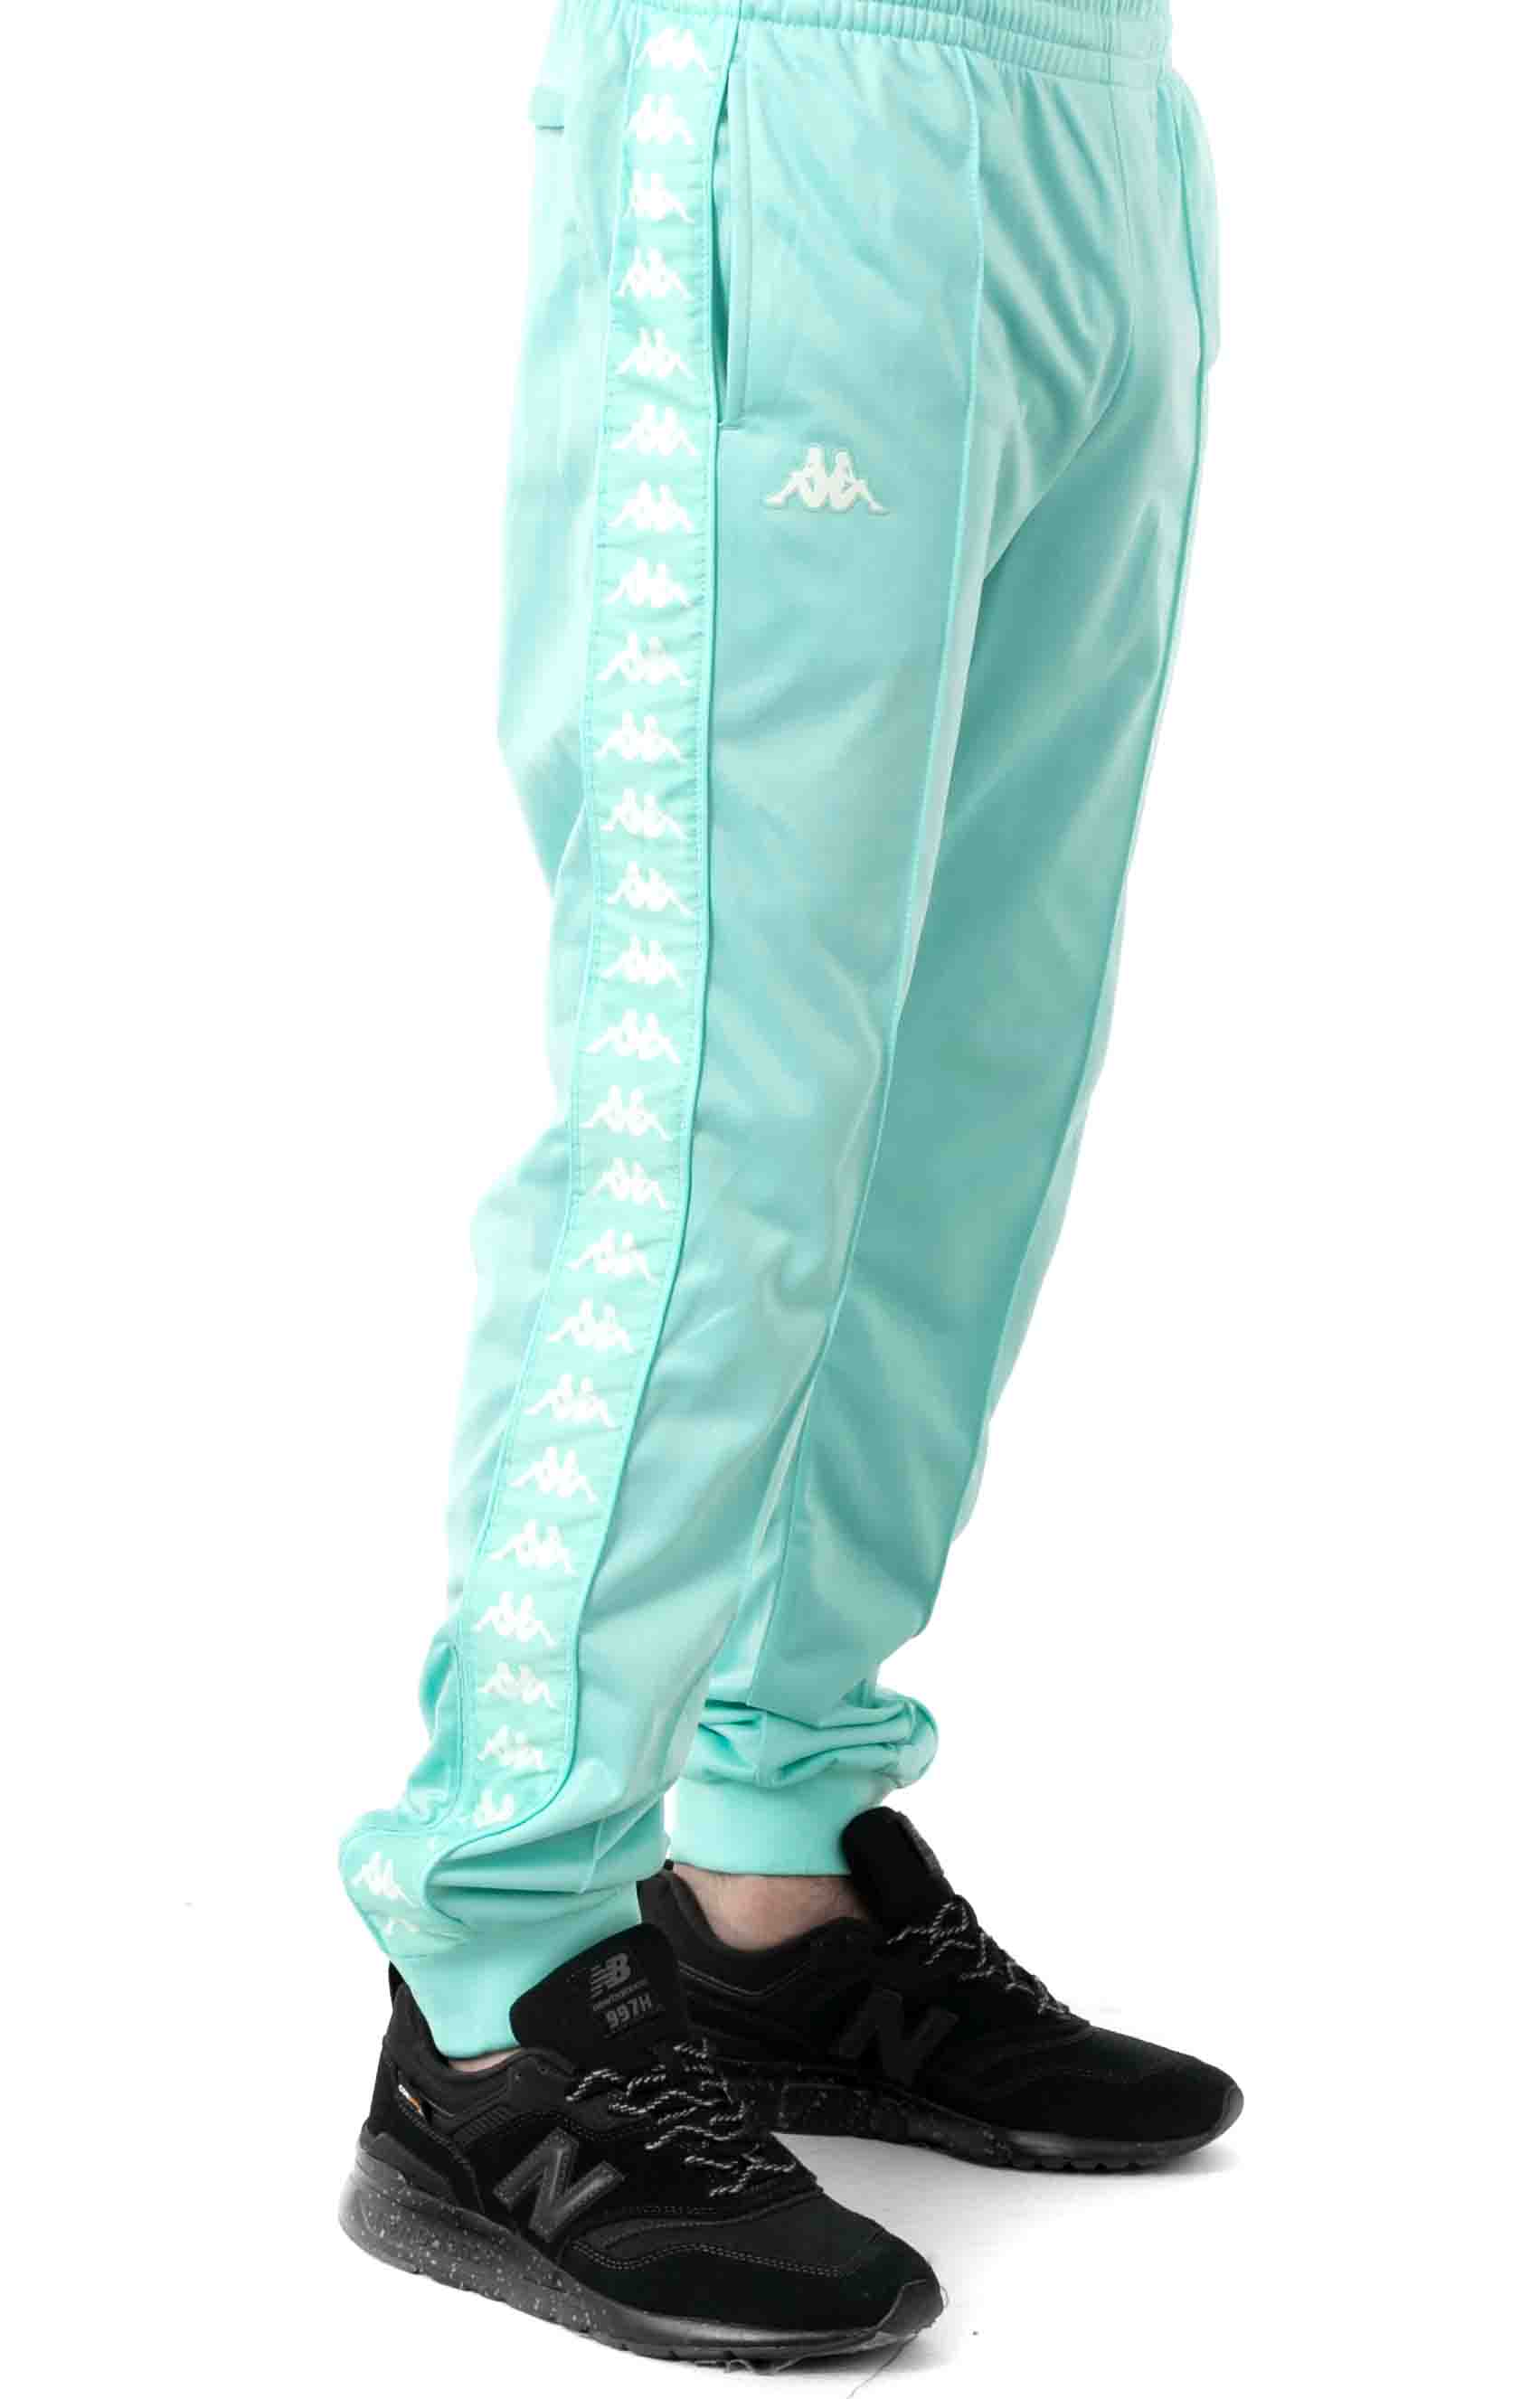 222 Banda Rastoriazz Trackpant - Green Aqua 2